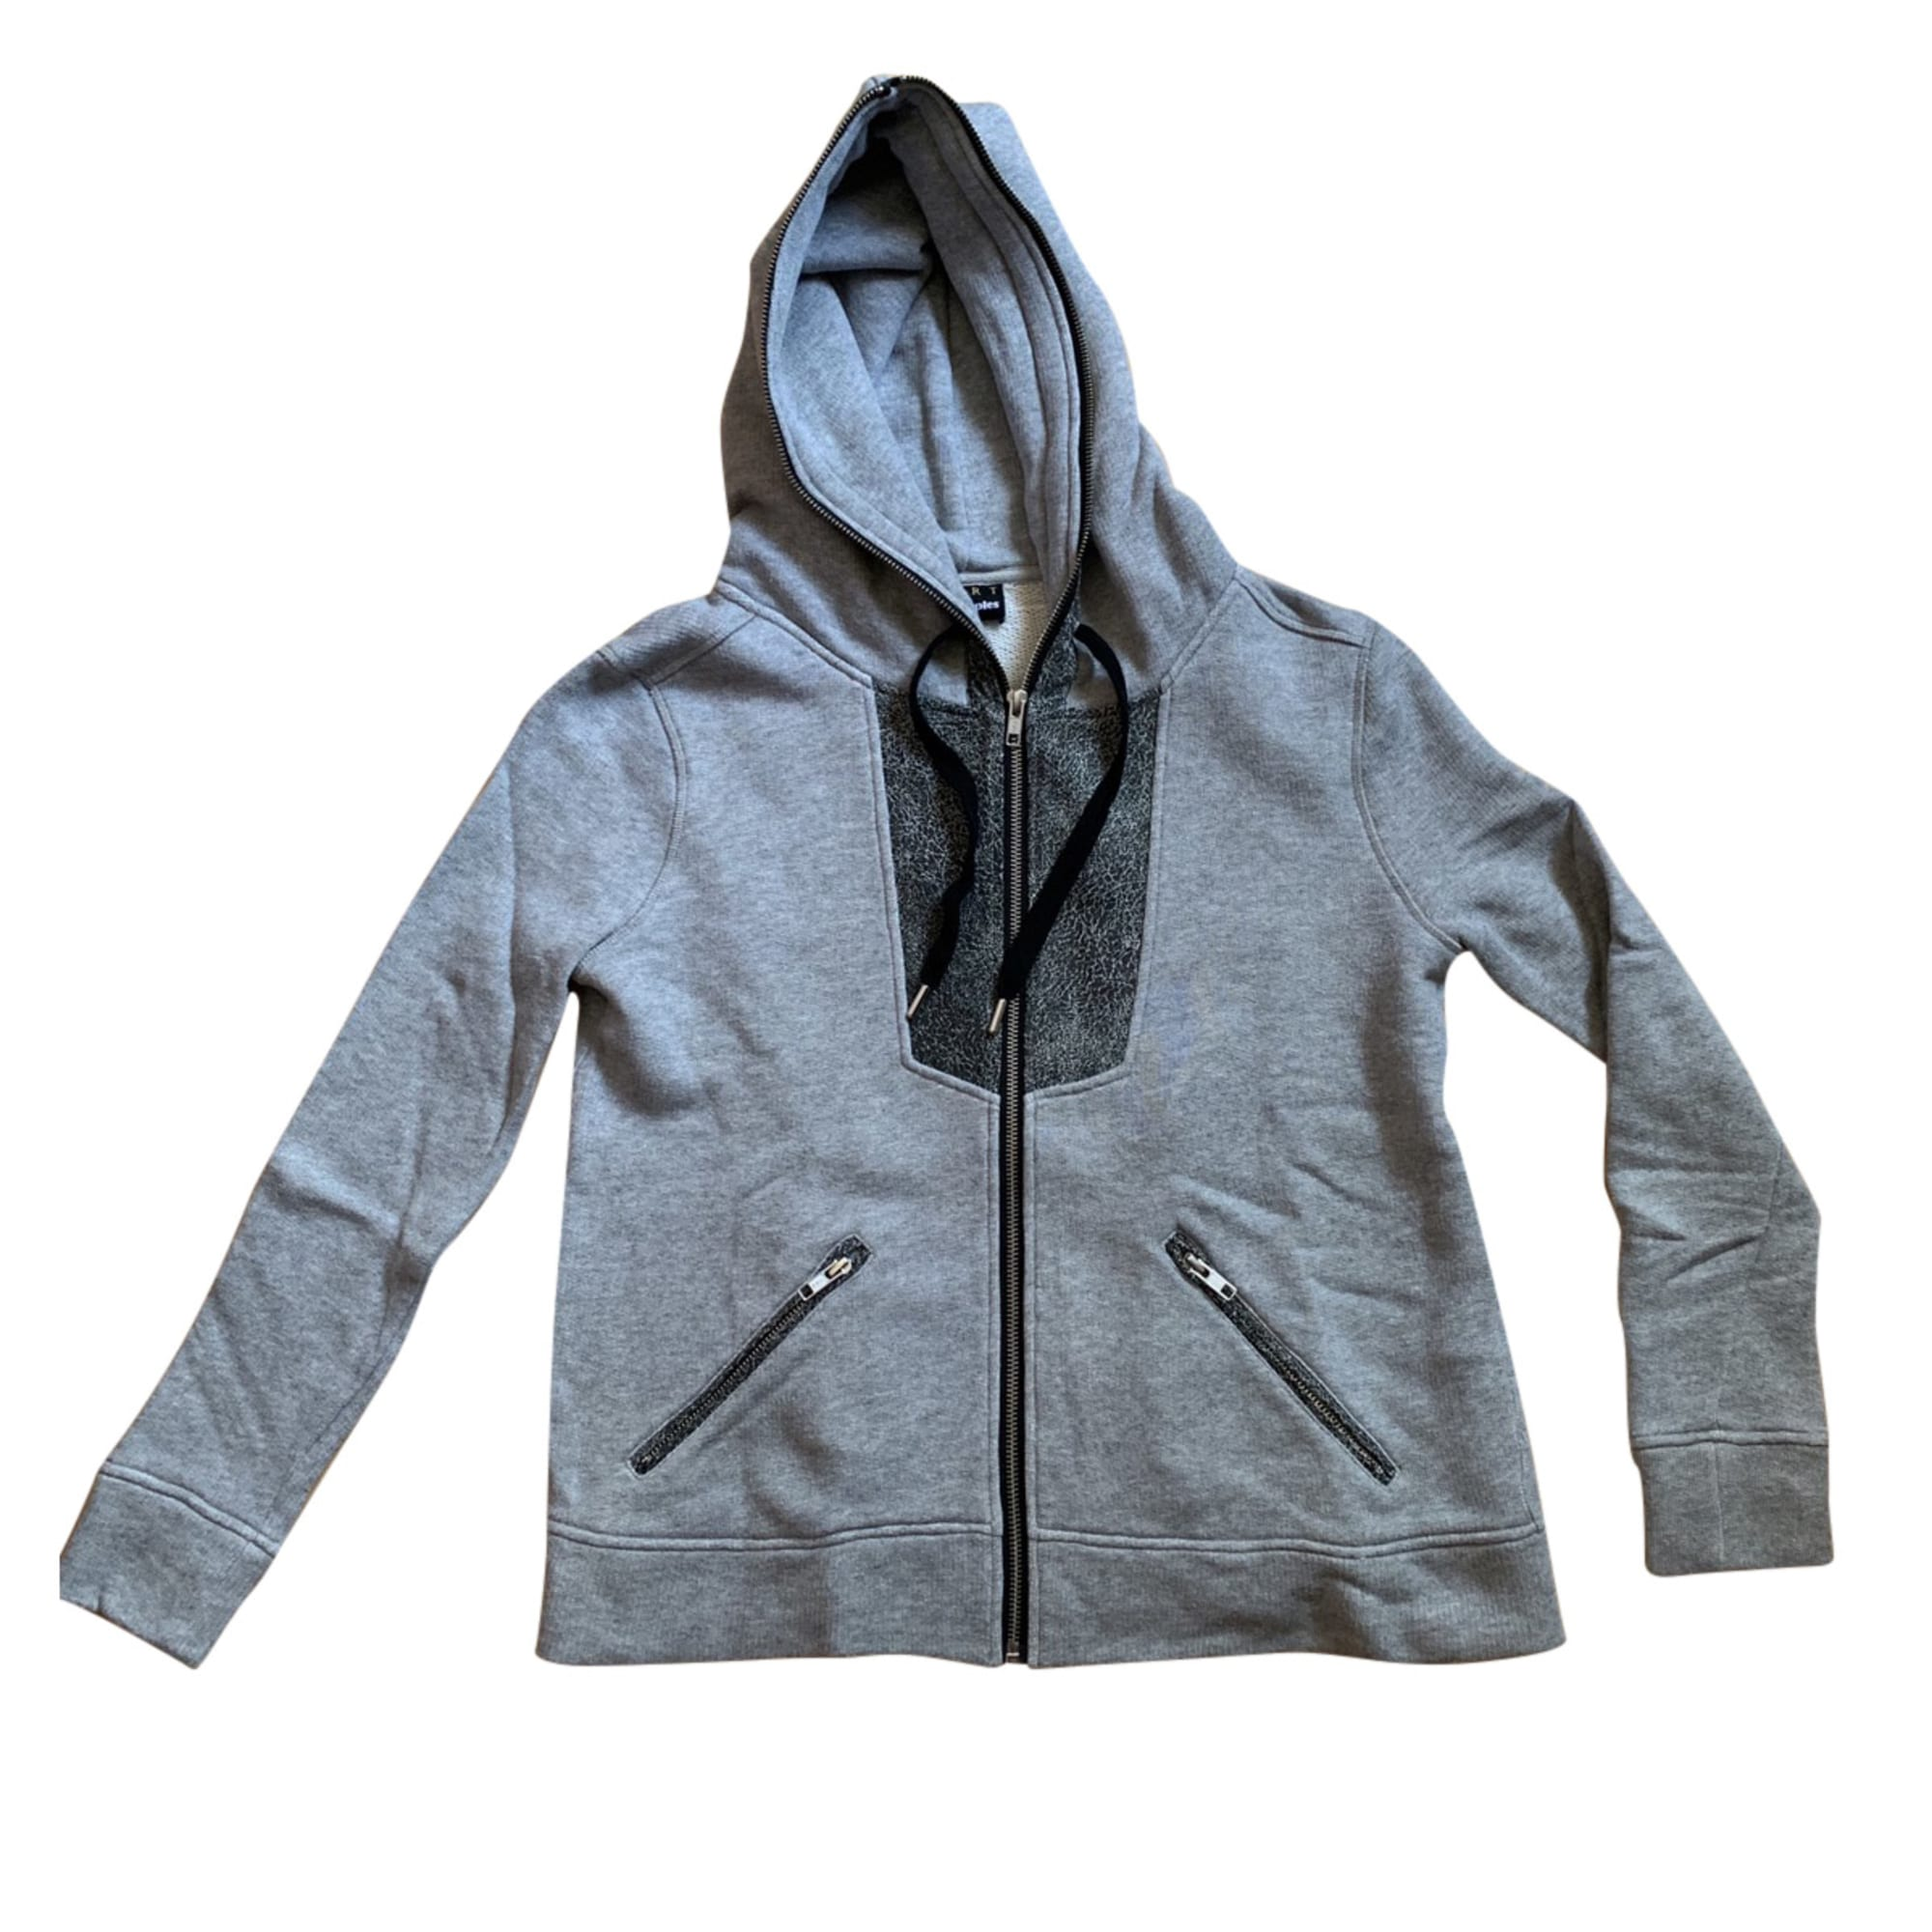 Veste THE KOOPLES Gris, anthracite